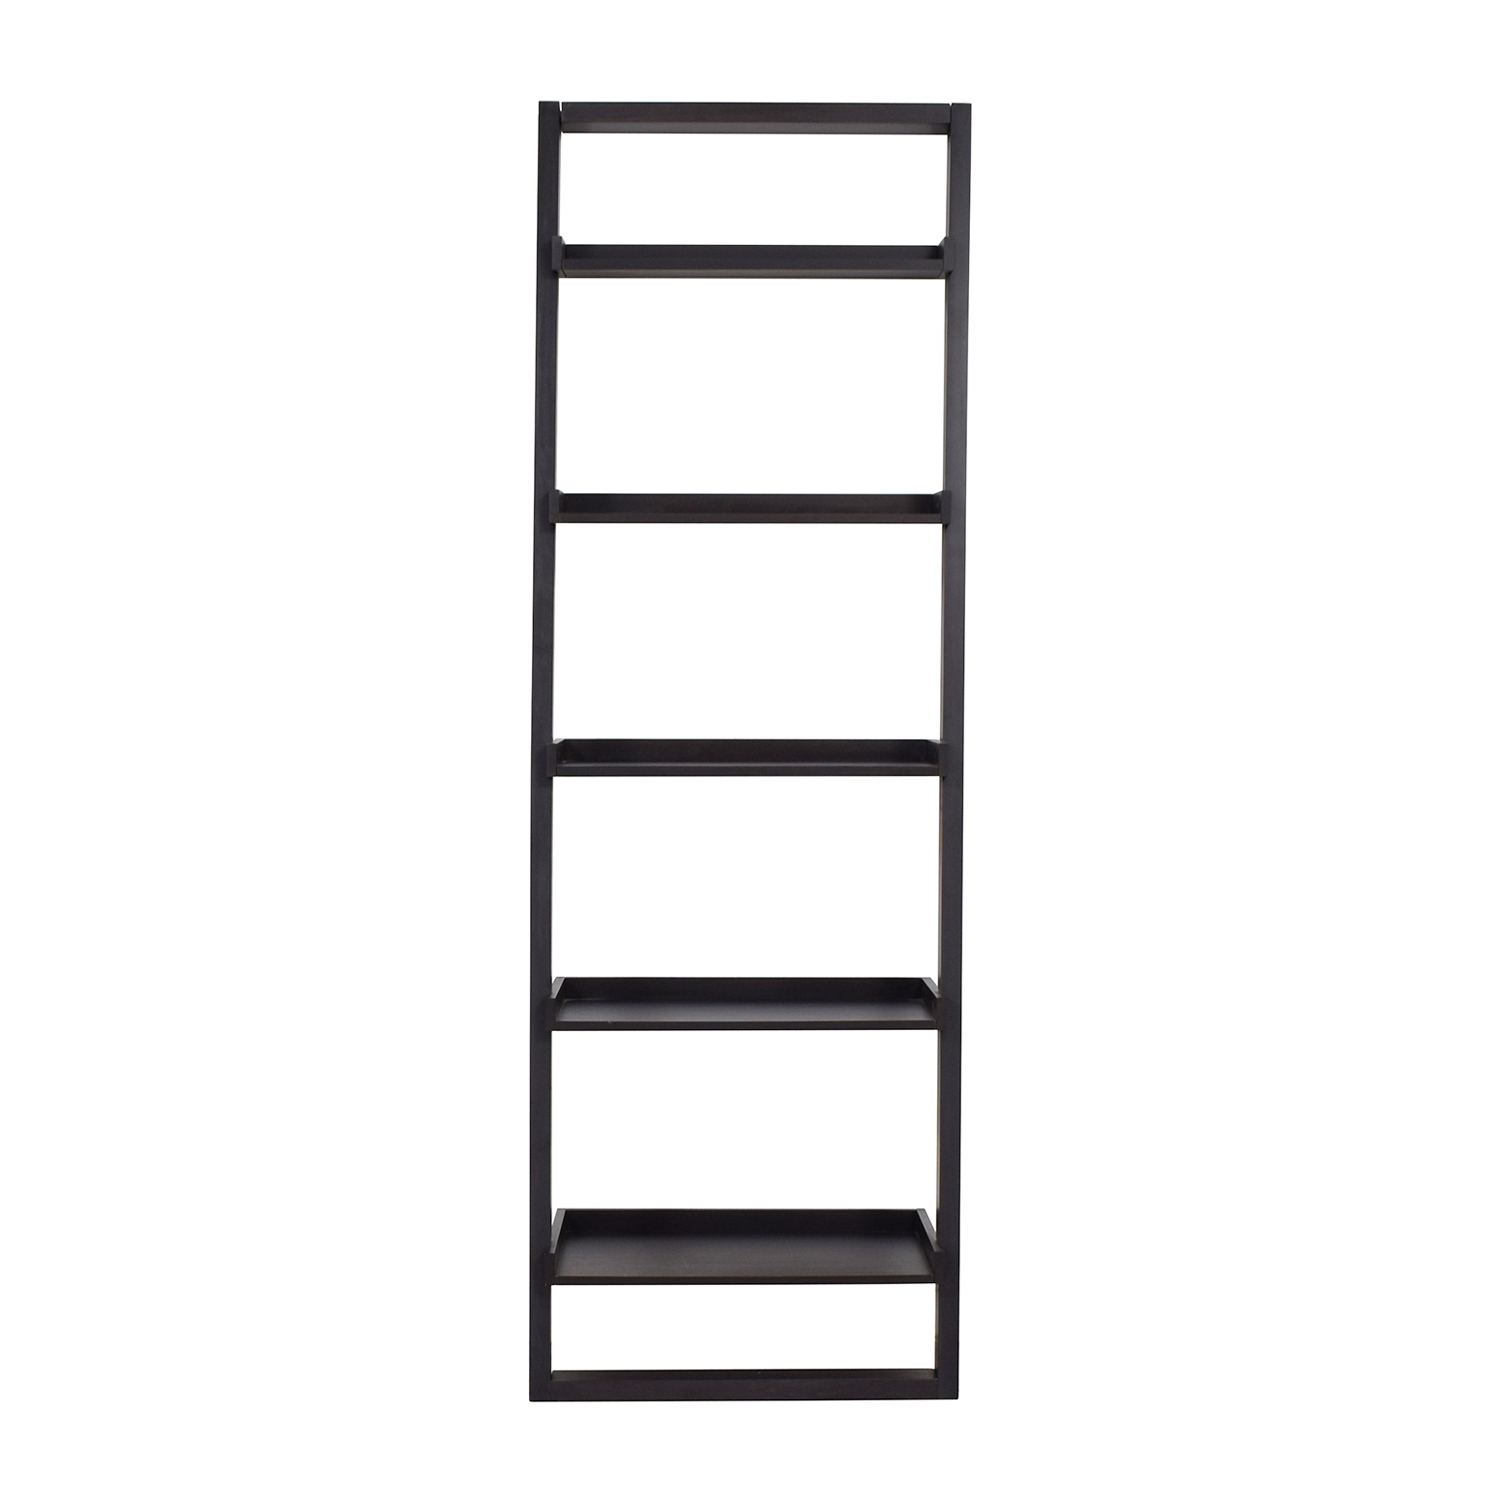 Crate & Barrel Crate & Barrel Black Leaning Bookcase for sale